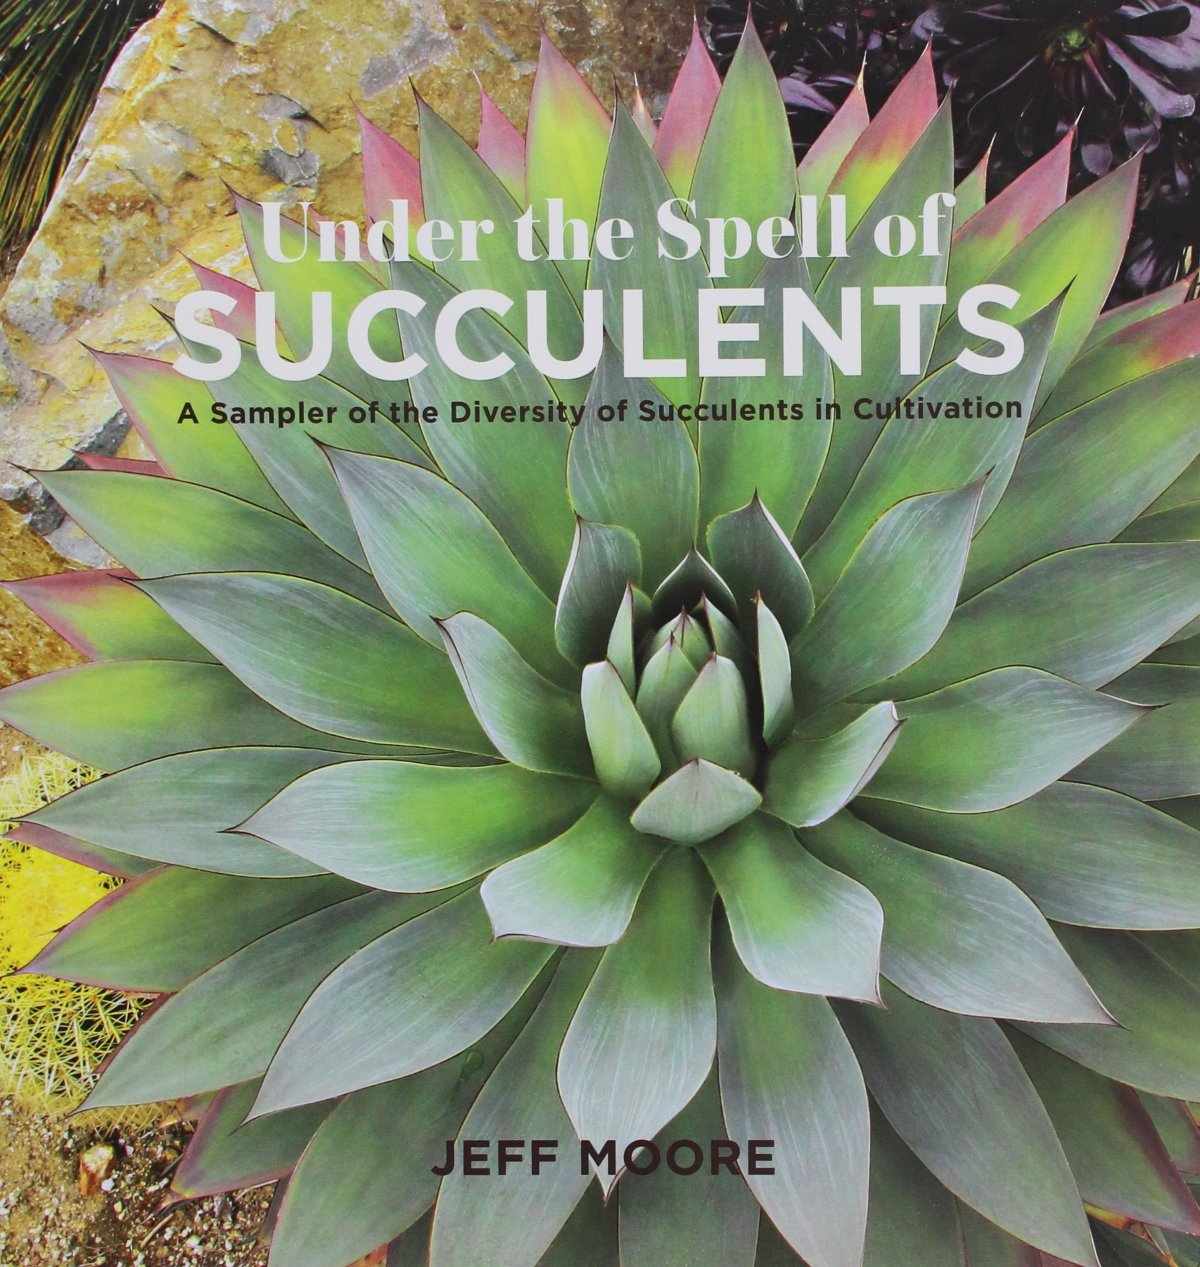 Under the Spell of Succulents